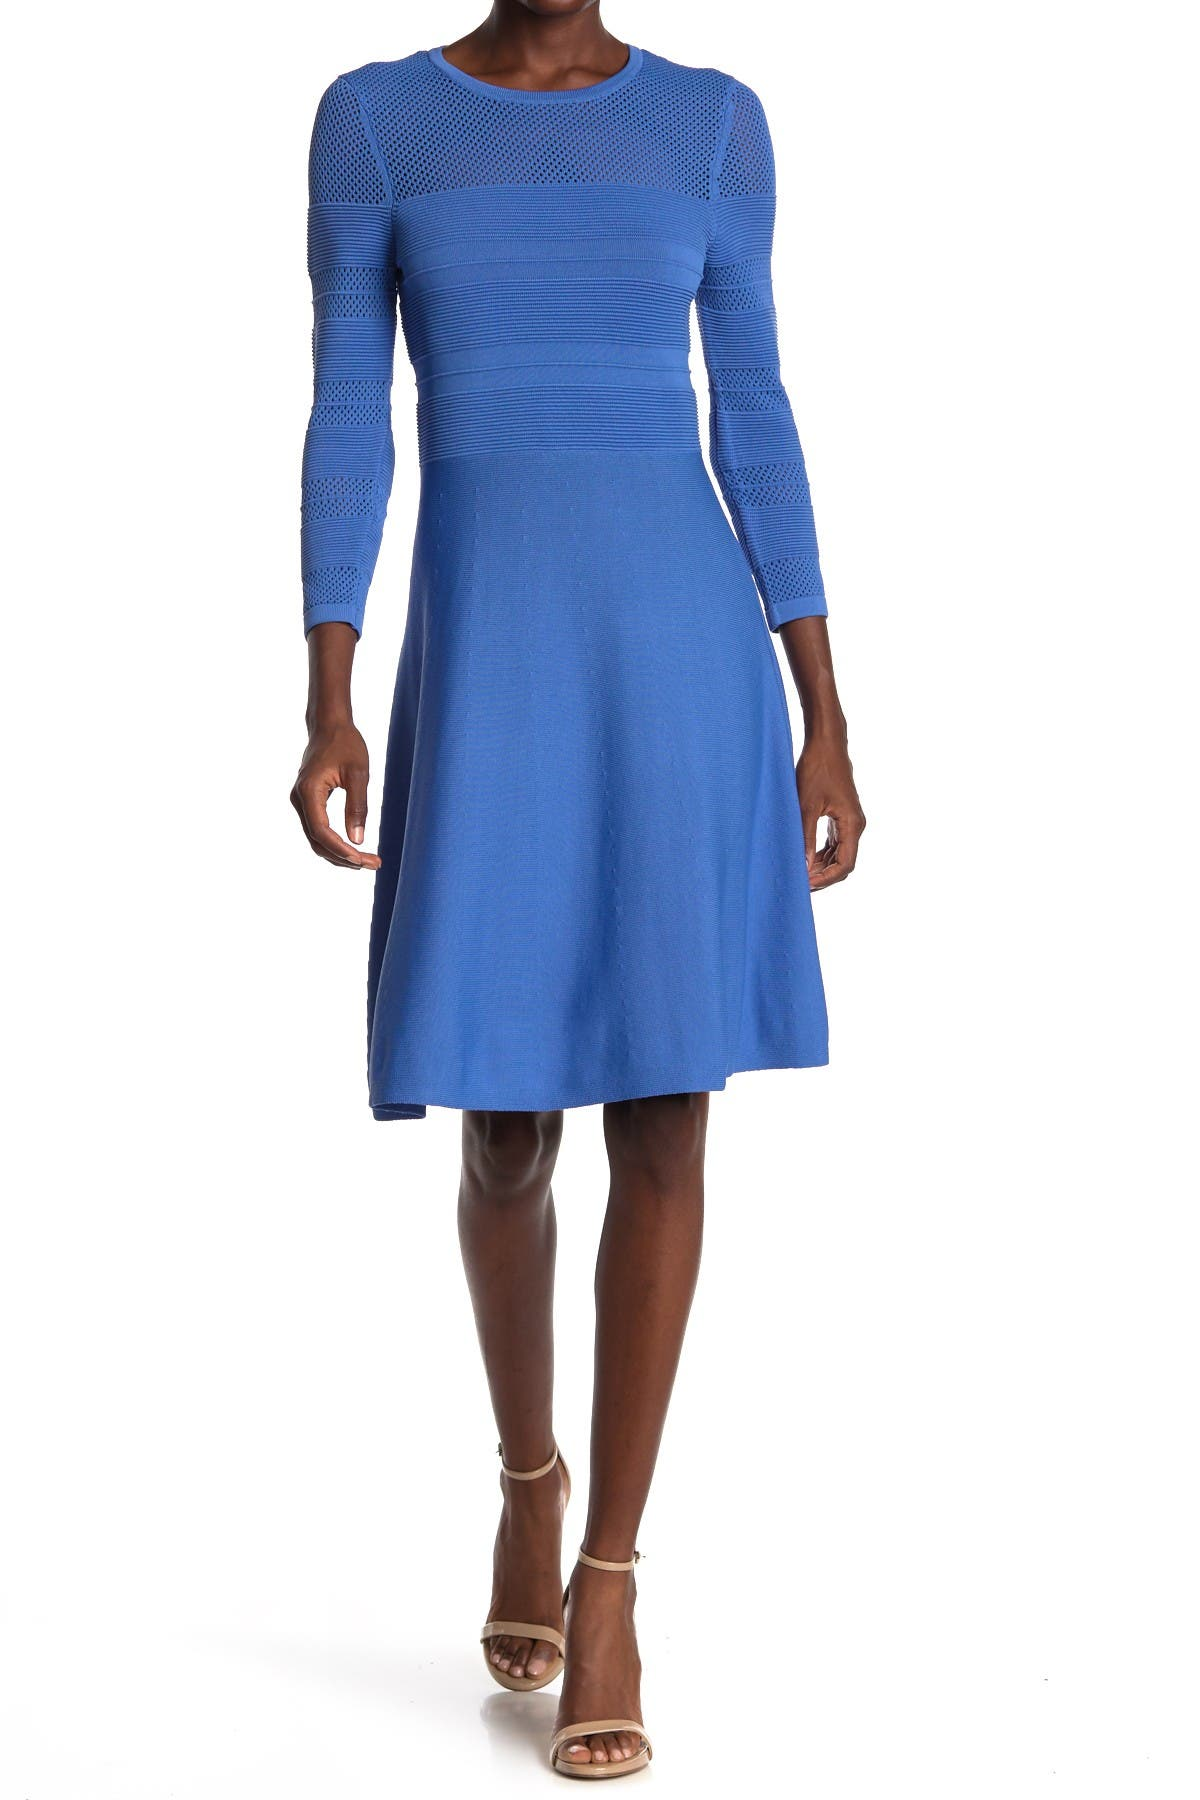 Image of Vince Camuto Fit & Flare Sweater Dress